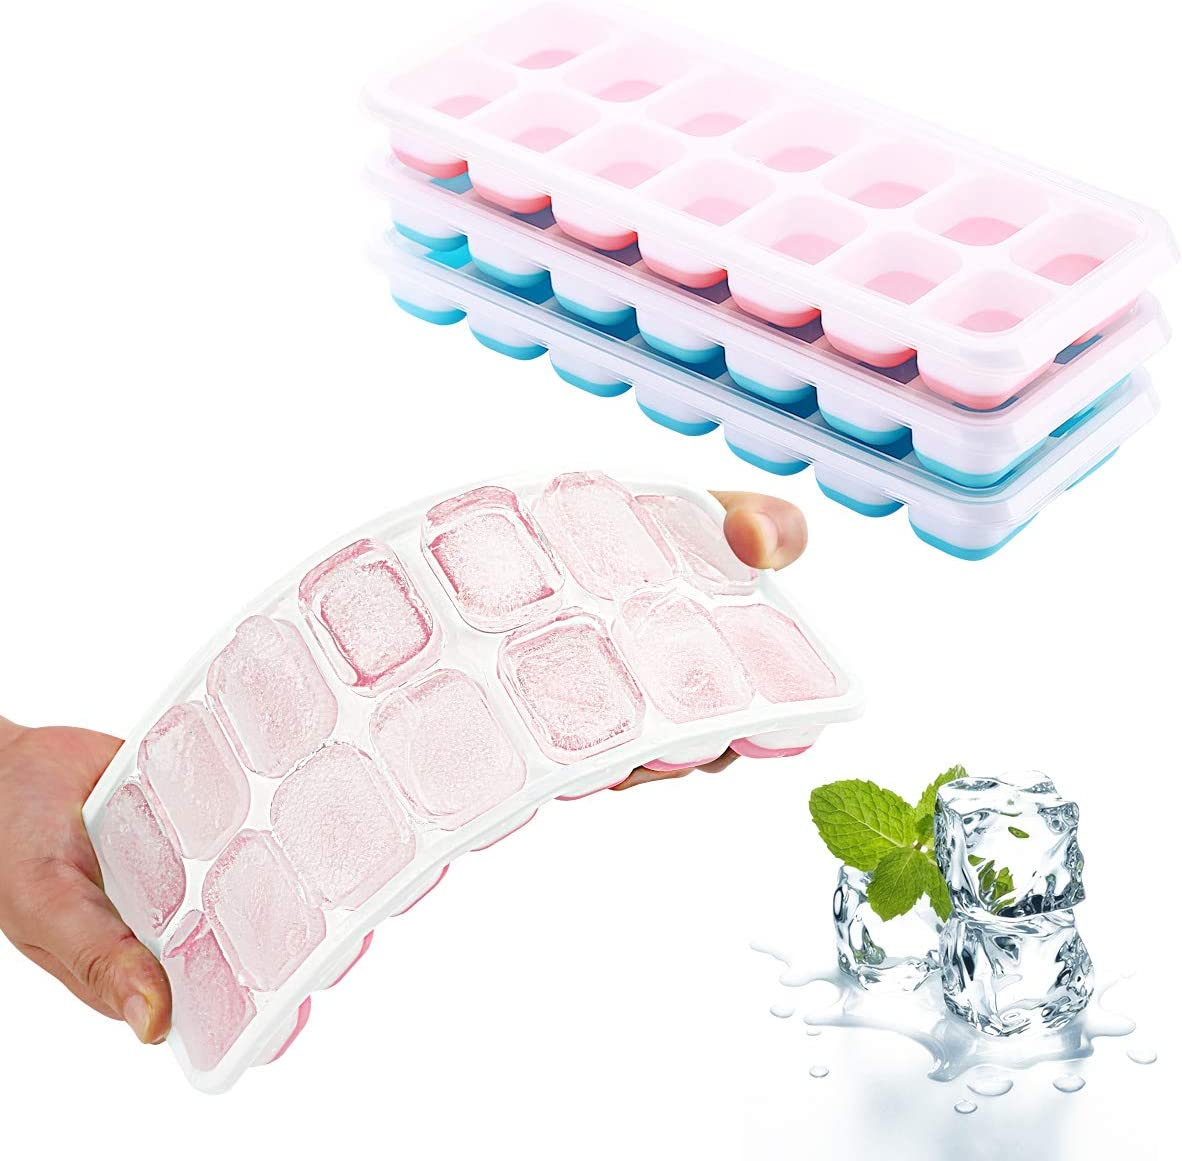 Ice Cube Trays 4 Pack, Stackable Silicone Ice Cube Tray, Easy Release 56-Nice-Sized Ice Cube Molds Maker, with 4 lids, BPA Free Flexible Durable Dishwasher Safe. By MERRYBOX. Blue+Pink